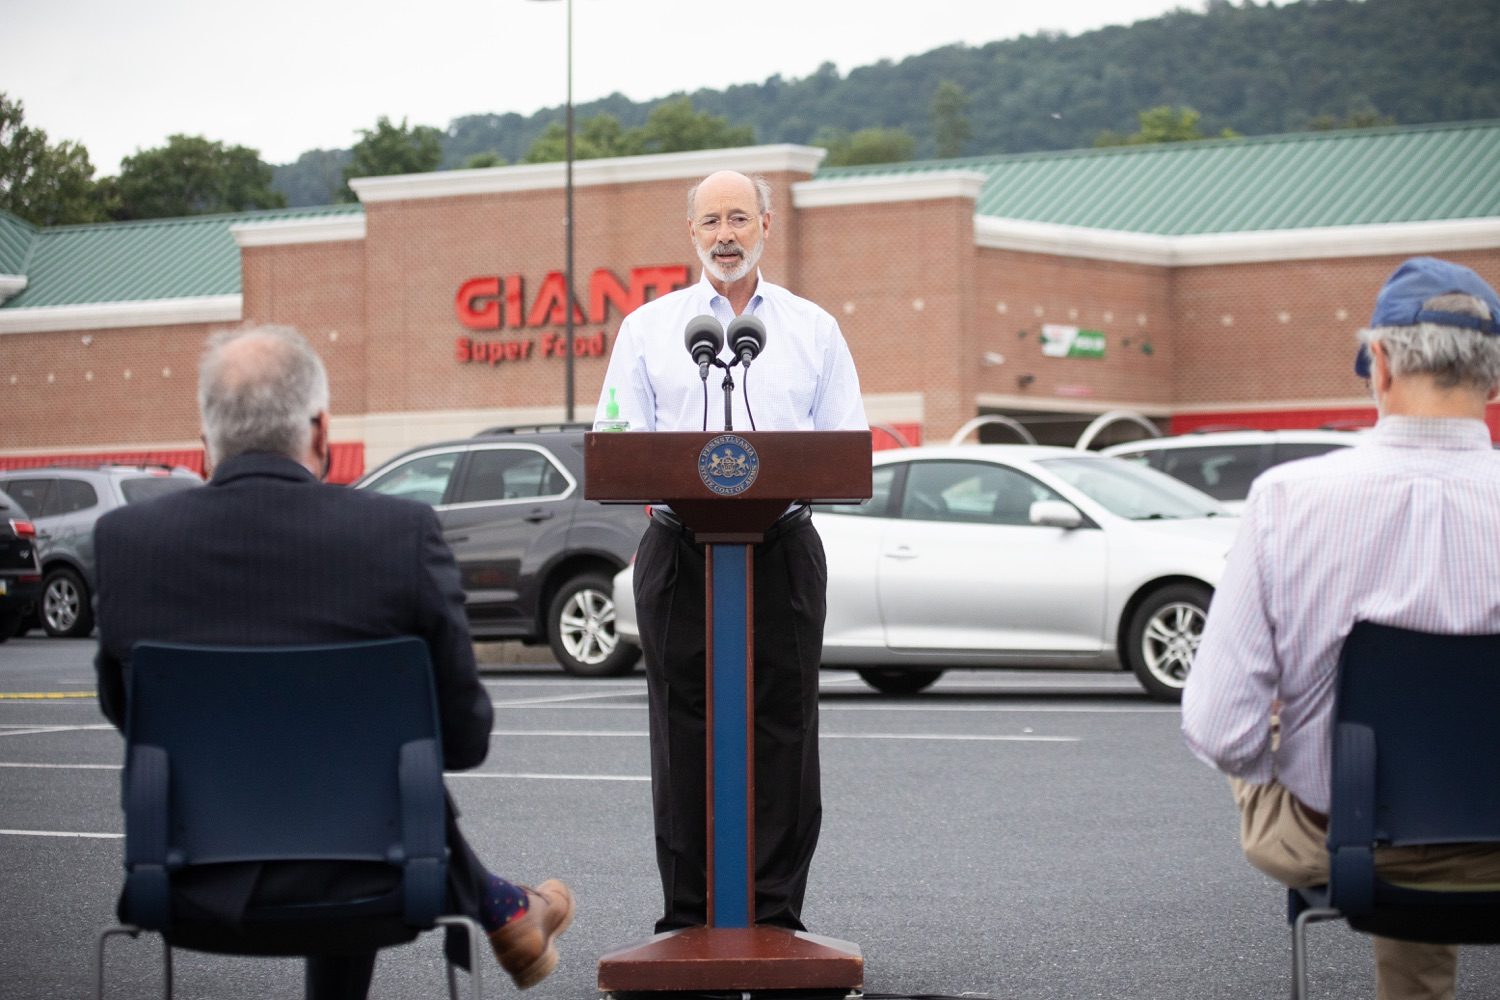 """<a href=""""https://filesource.wostreaming.net/commonwealthofpa/photo/18166_gov_cares_act_dz_07.jpg"""" target=""""_blank"""">⇣Download Photo<br></a>Pennsylvania Governor Tom Wolf speaking at the announcement.  Today, Governor Tom Wolf announced the availability of $50 million in grant funding to help employers provide hazard pay to employees in life-sustaining occupations during the COVID-19 pandemic. Hazard pay is intended to keep front-line employees working in vital industry sectors across Pennsylvania.  Harrisburg, PA  July 16, 2020"""